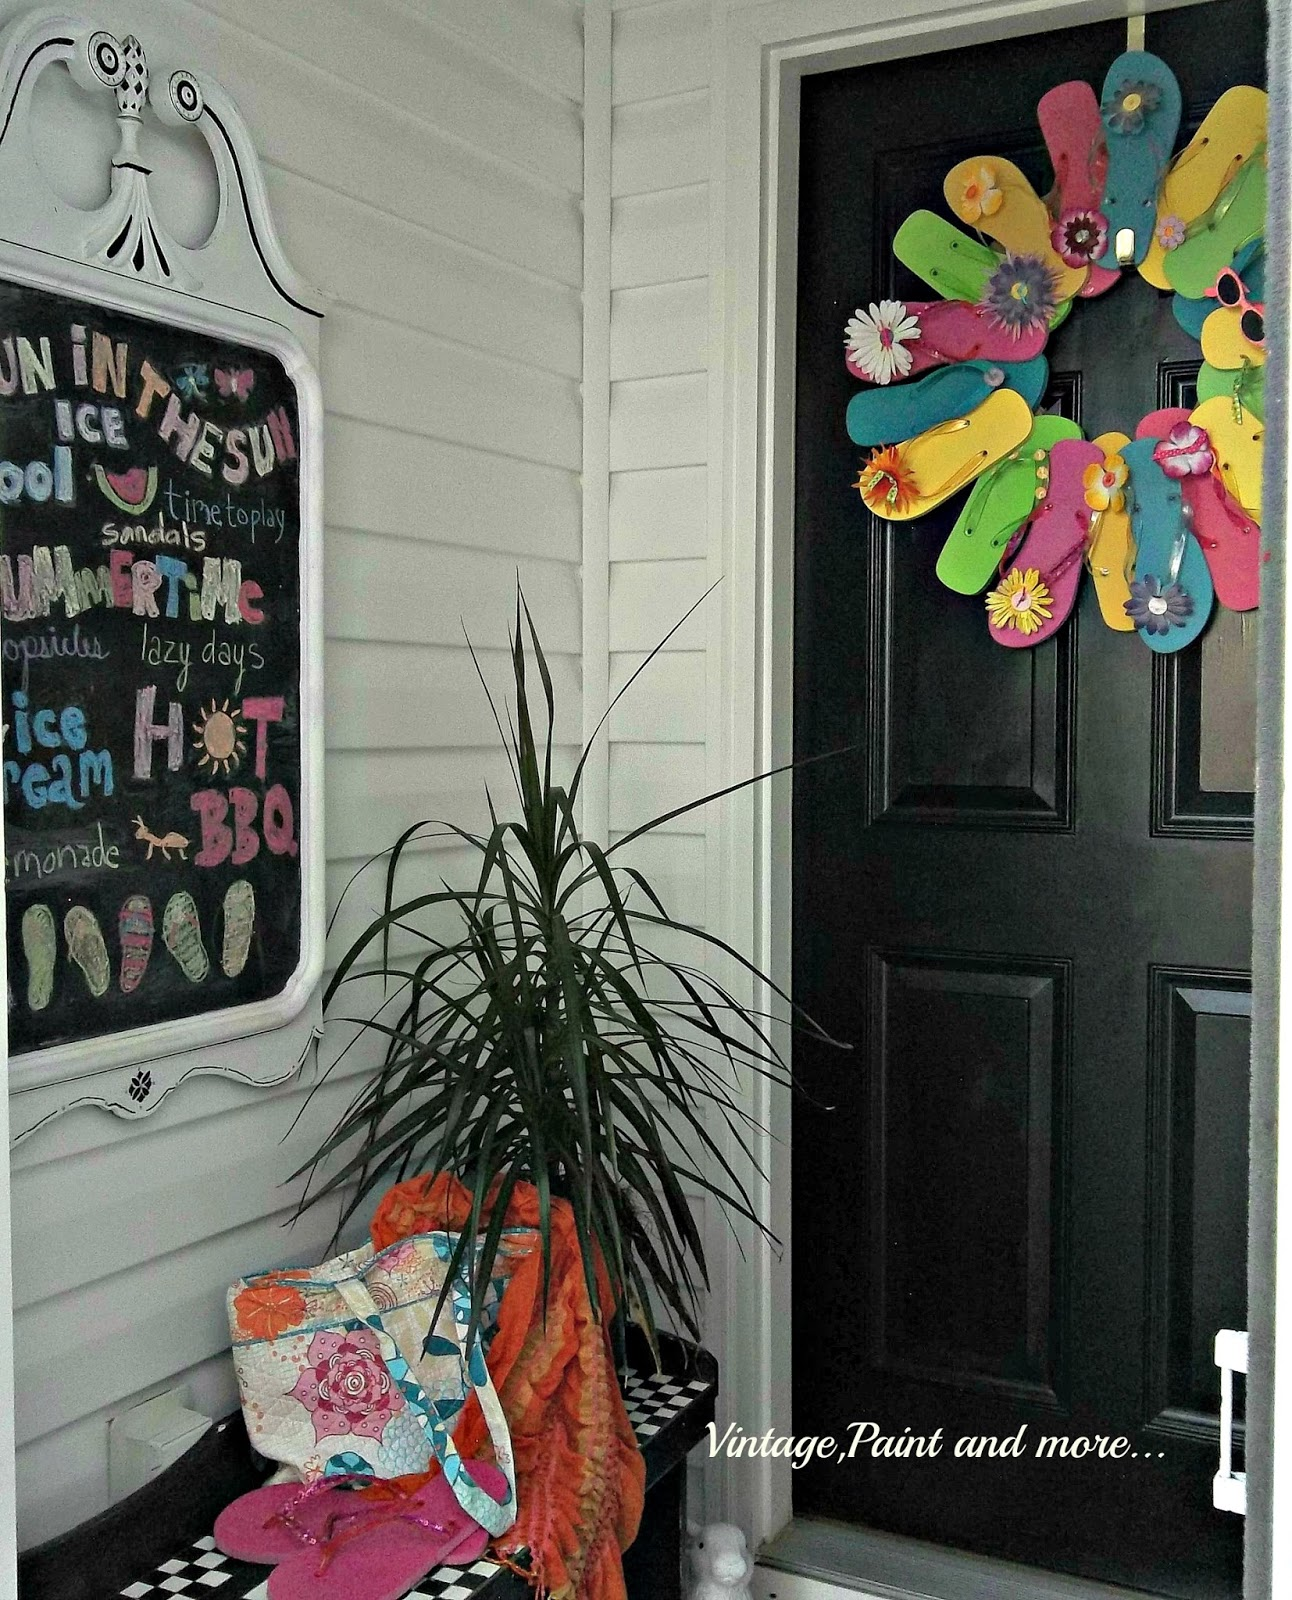 Vintage, Paint and more... chalkboard, wreath made from flip flops, hot colors of summer